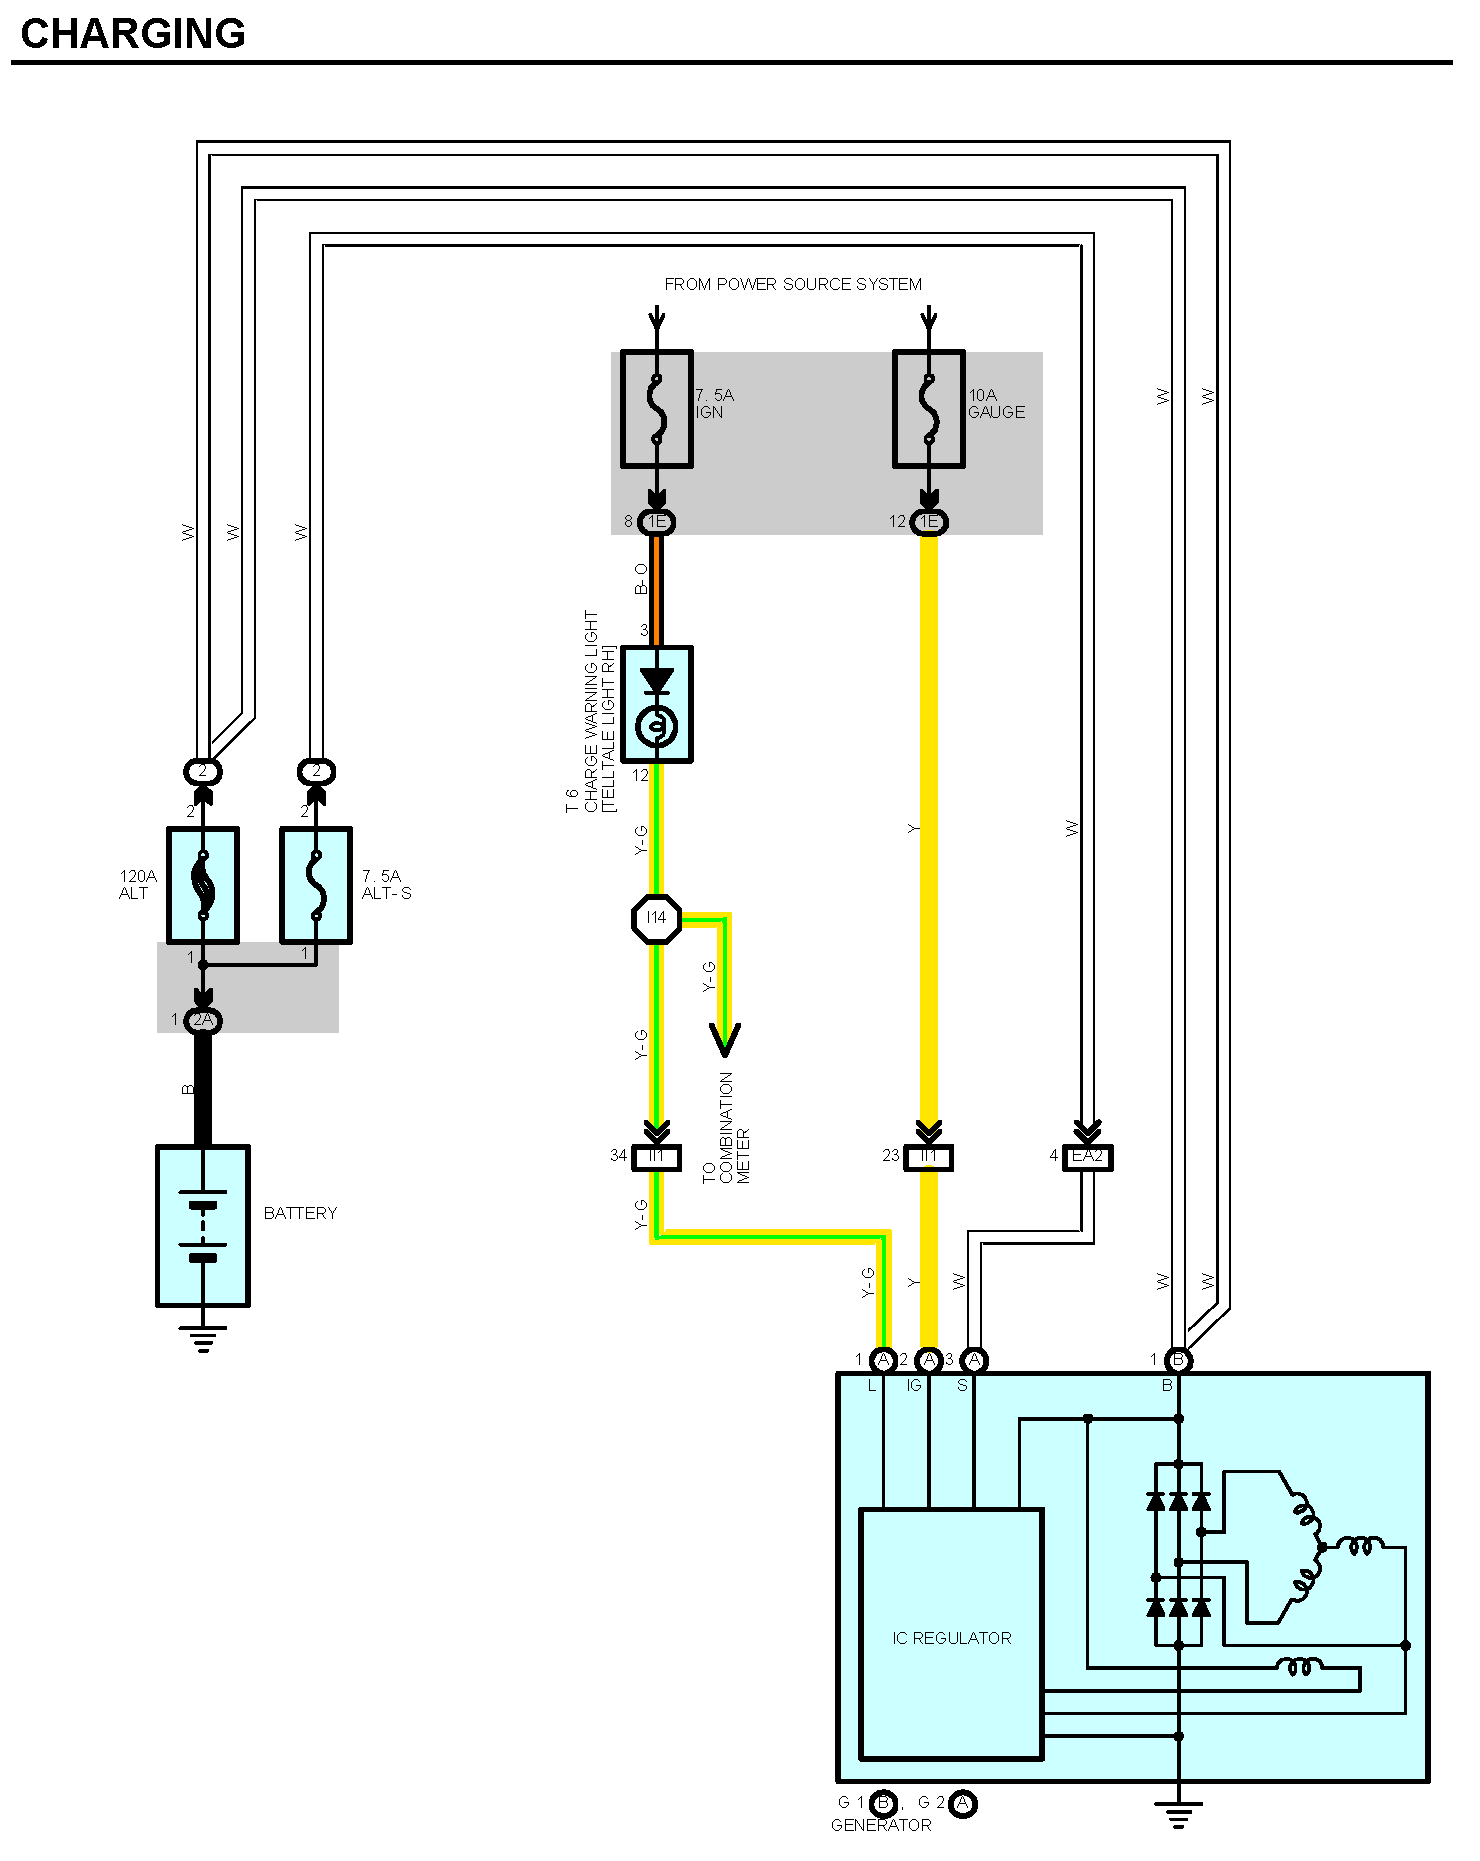 the below wiring diagram taken from the jza80 tsrm shows the general wiring  arrangement for alternators with inbuilt regulators